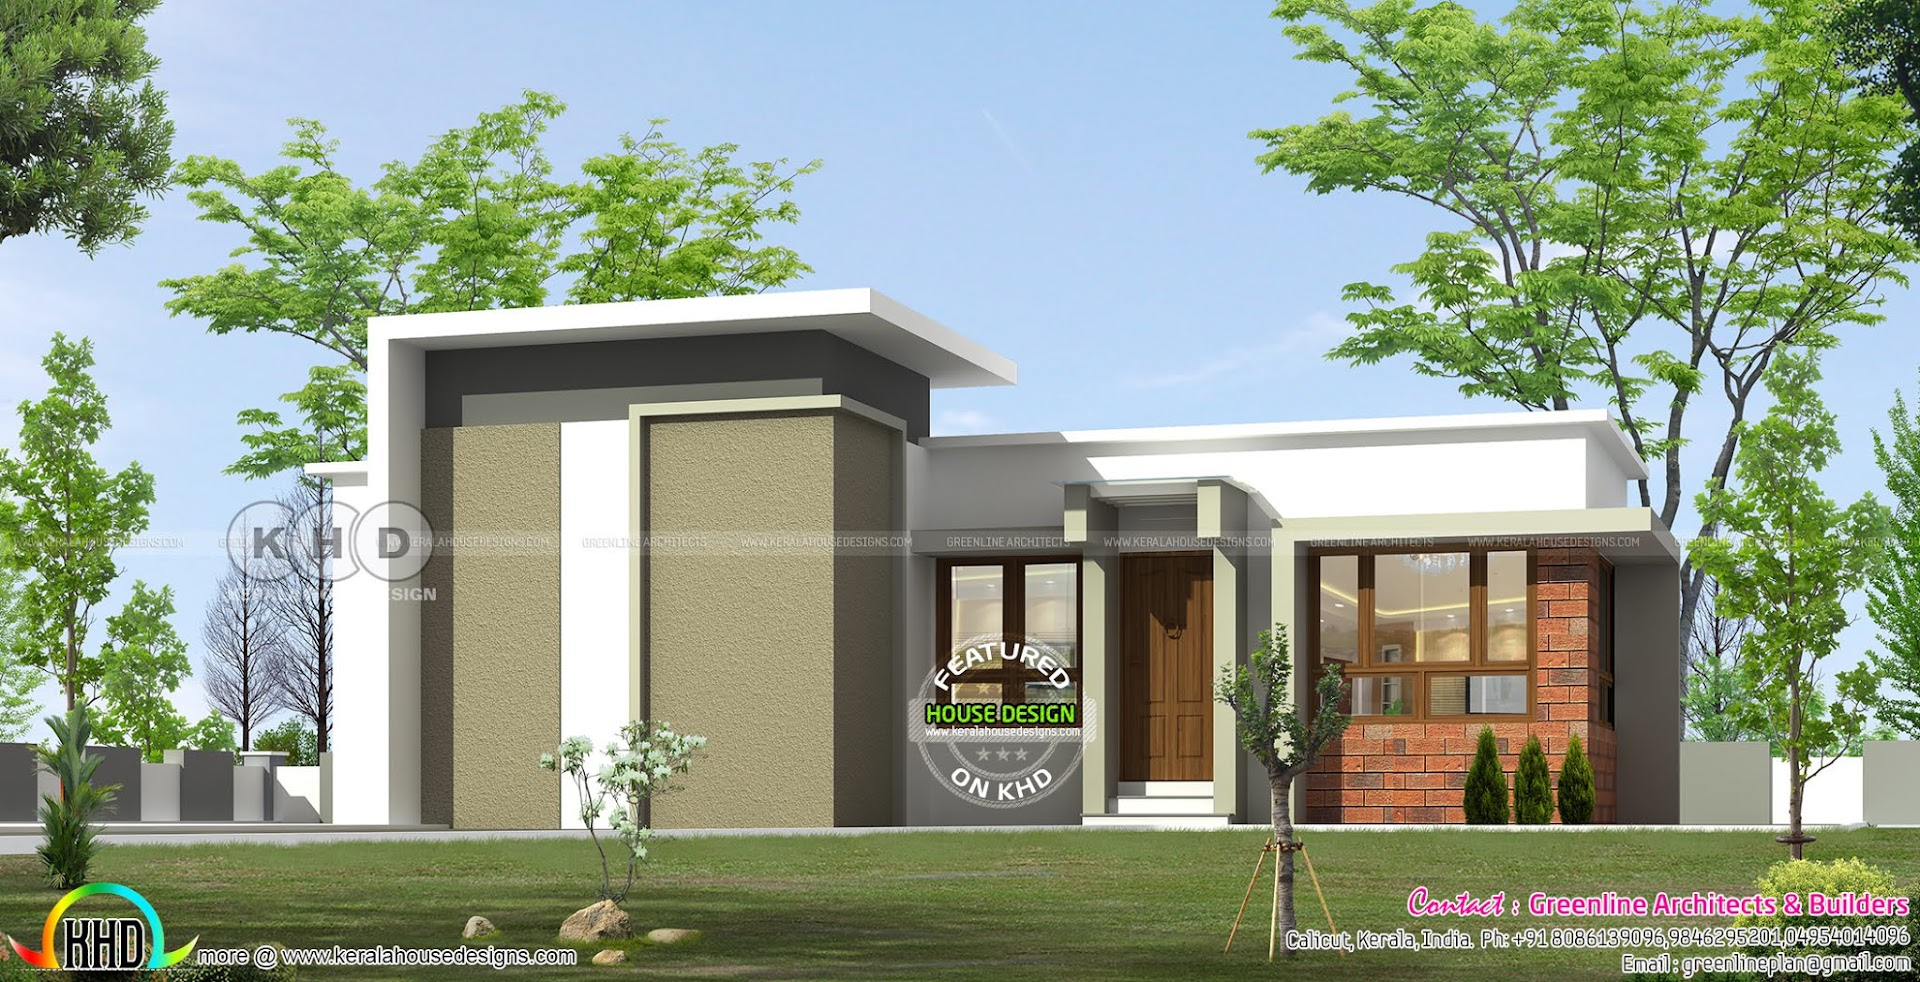 Aed 55000 Cost Estimated Small Budget Home Kerala Home